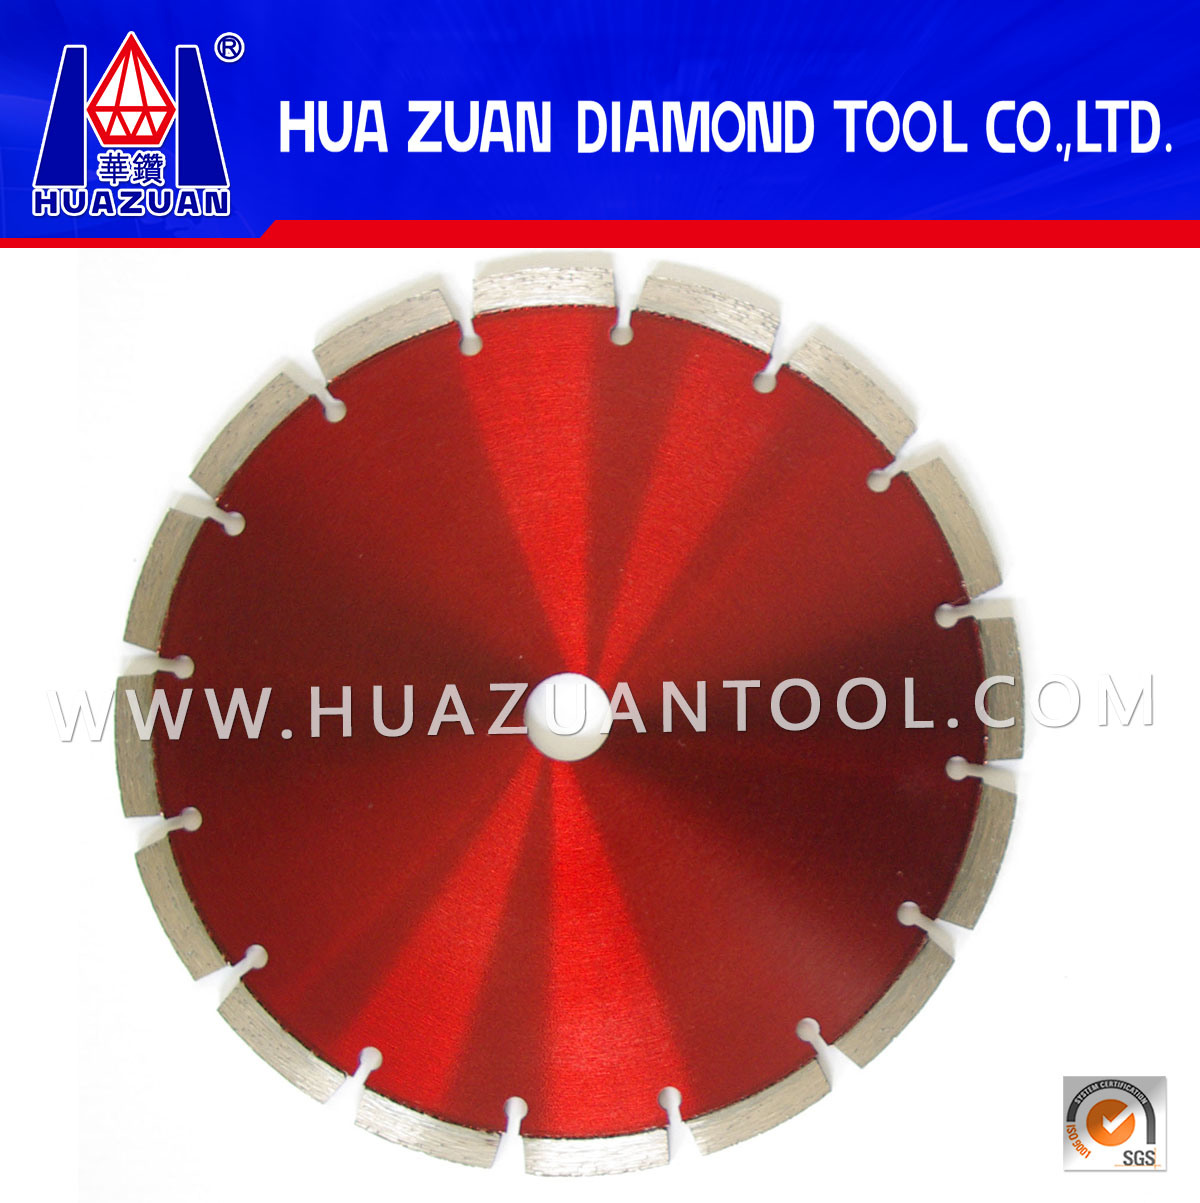 Concrete Saw Blade for Cutting Green Concrete